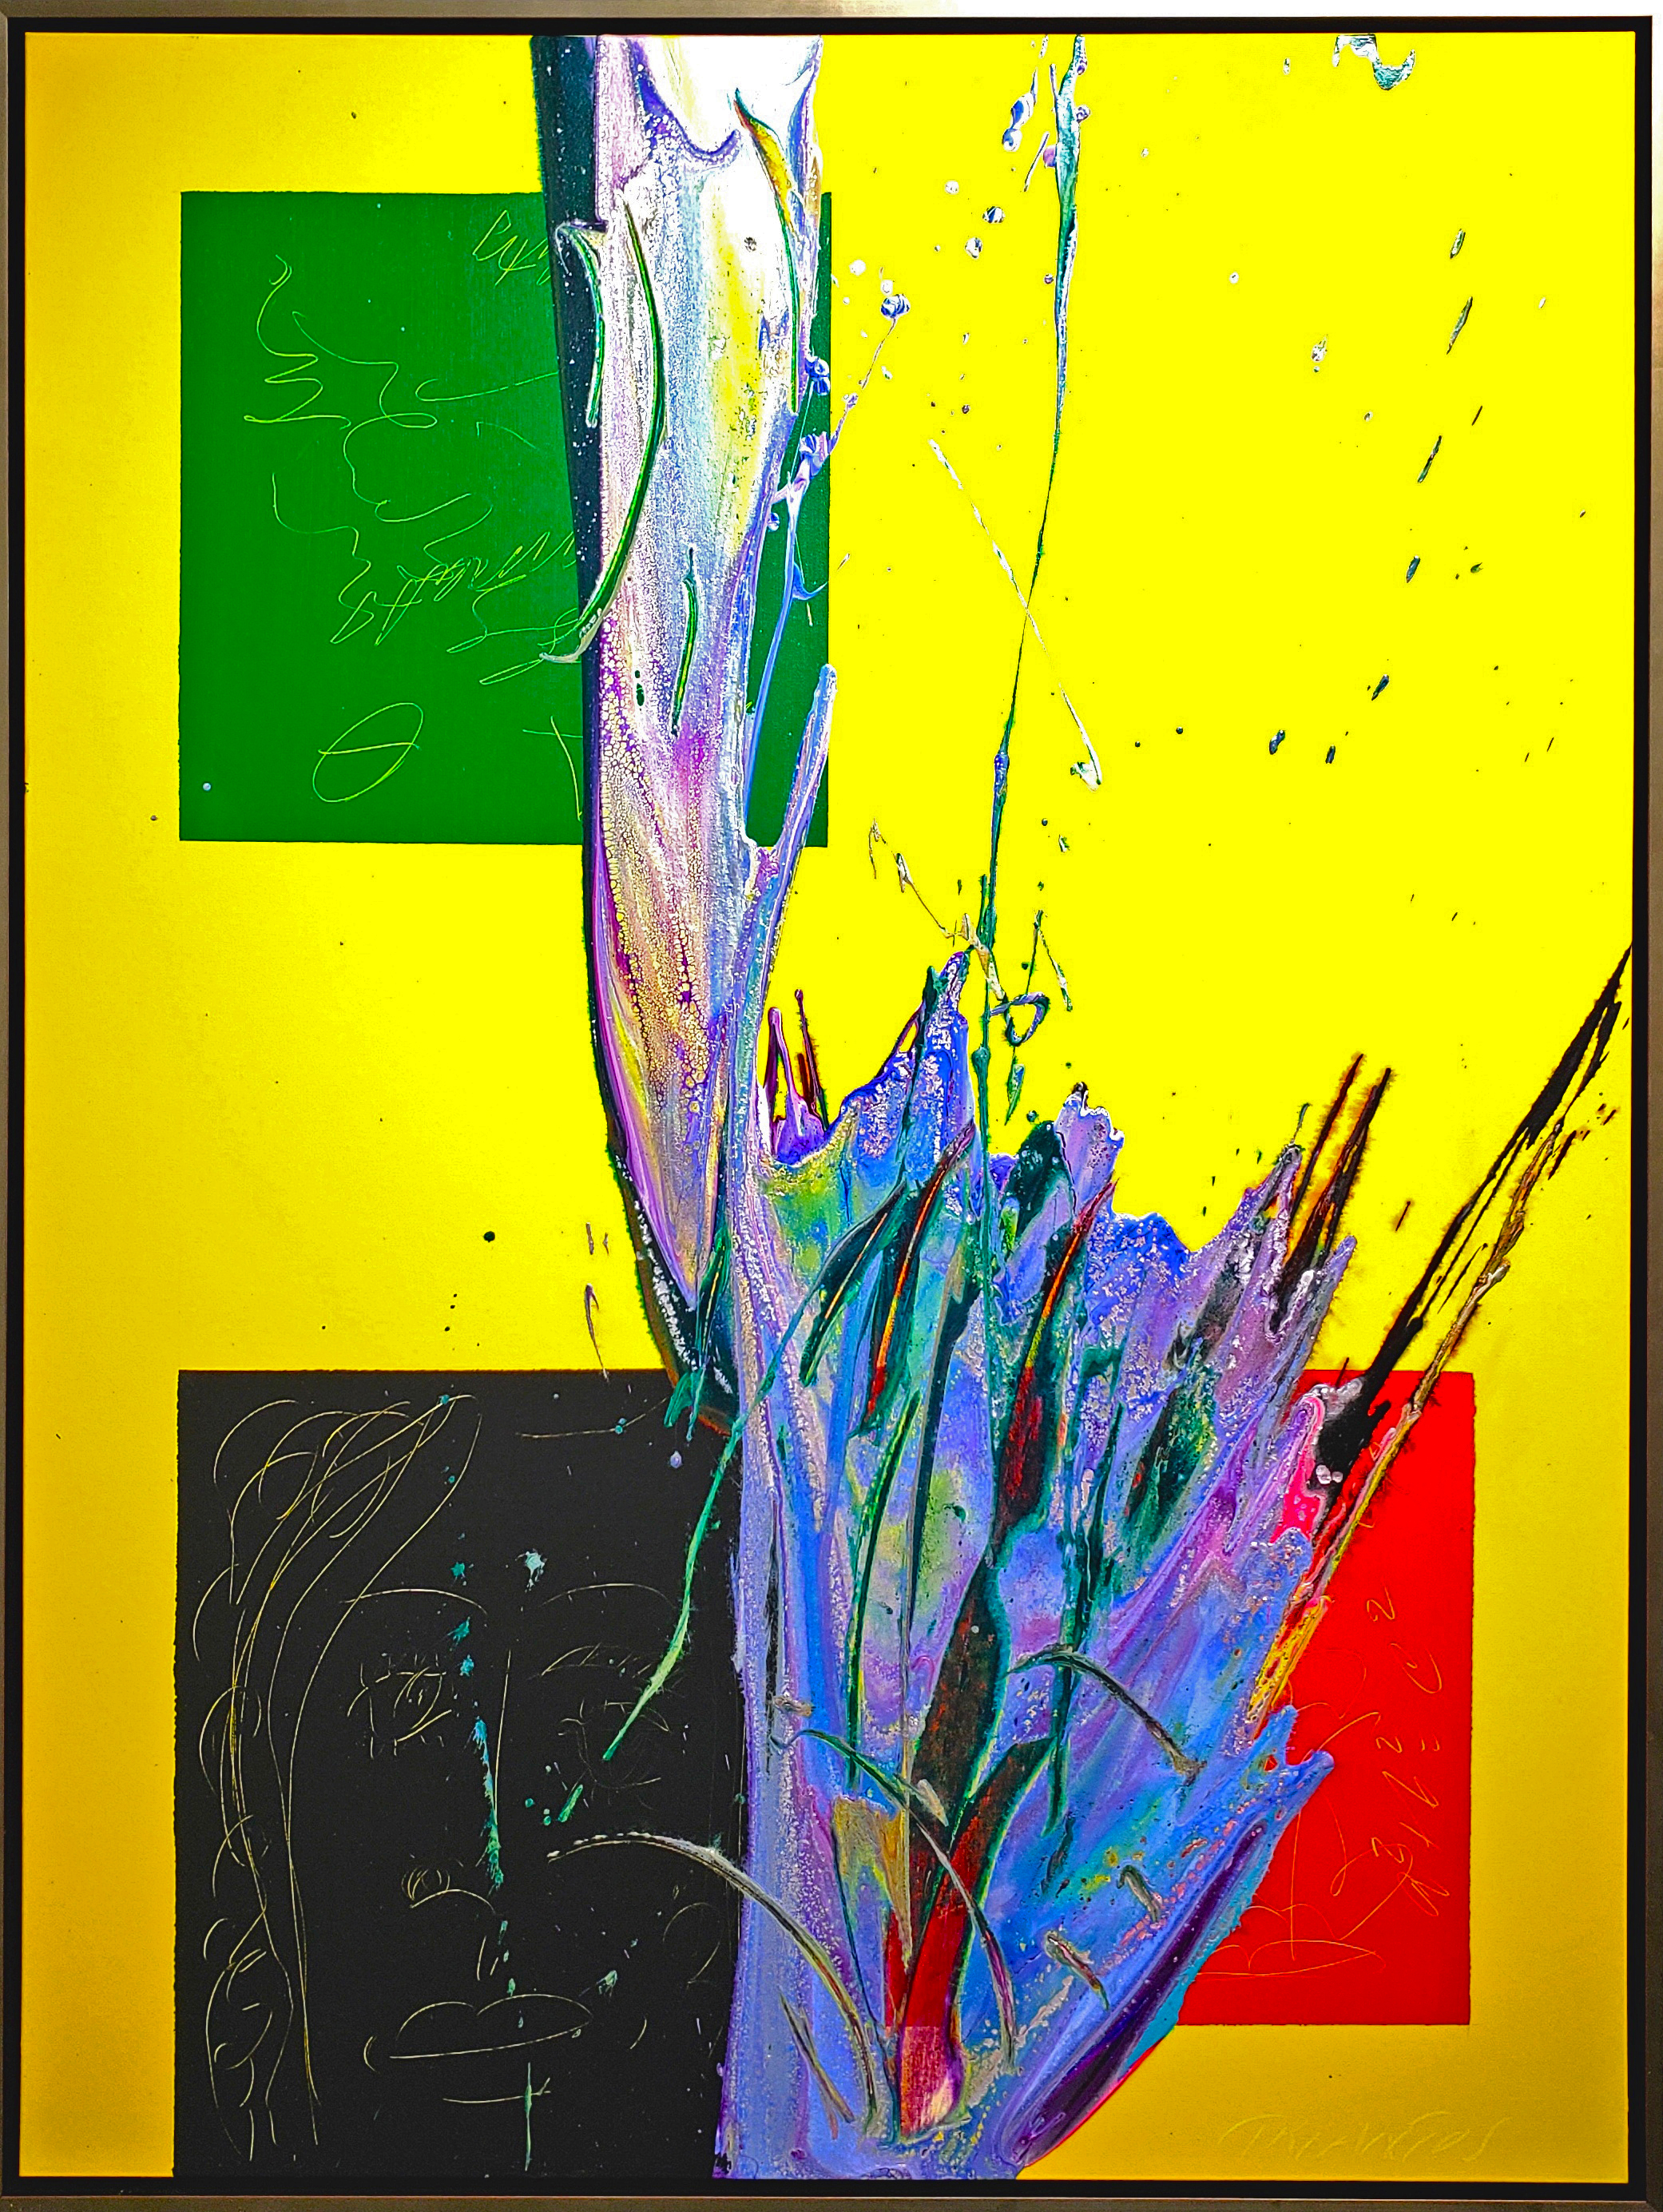 "Splash of Colour 2 # 138, 2019, acrylic on canvas, 48"" x 36"" (122 x 91.4 cm)"